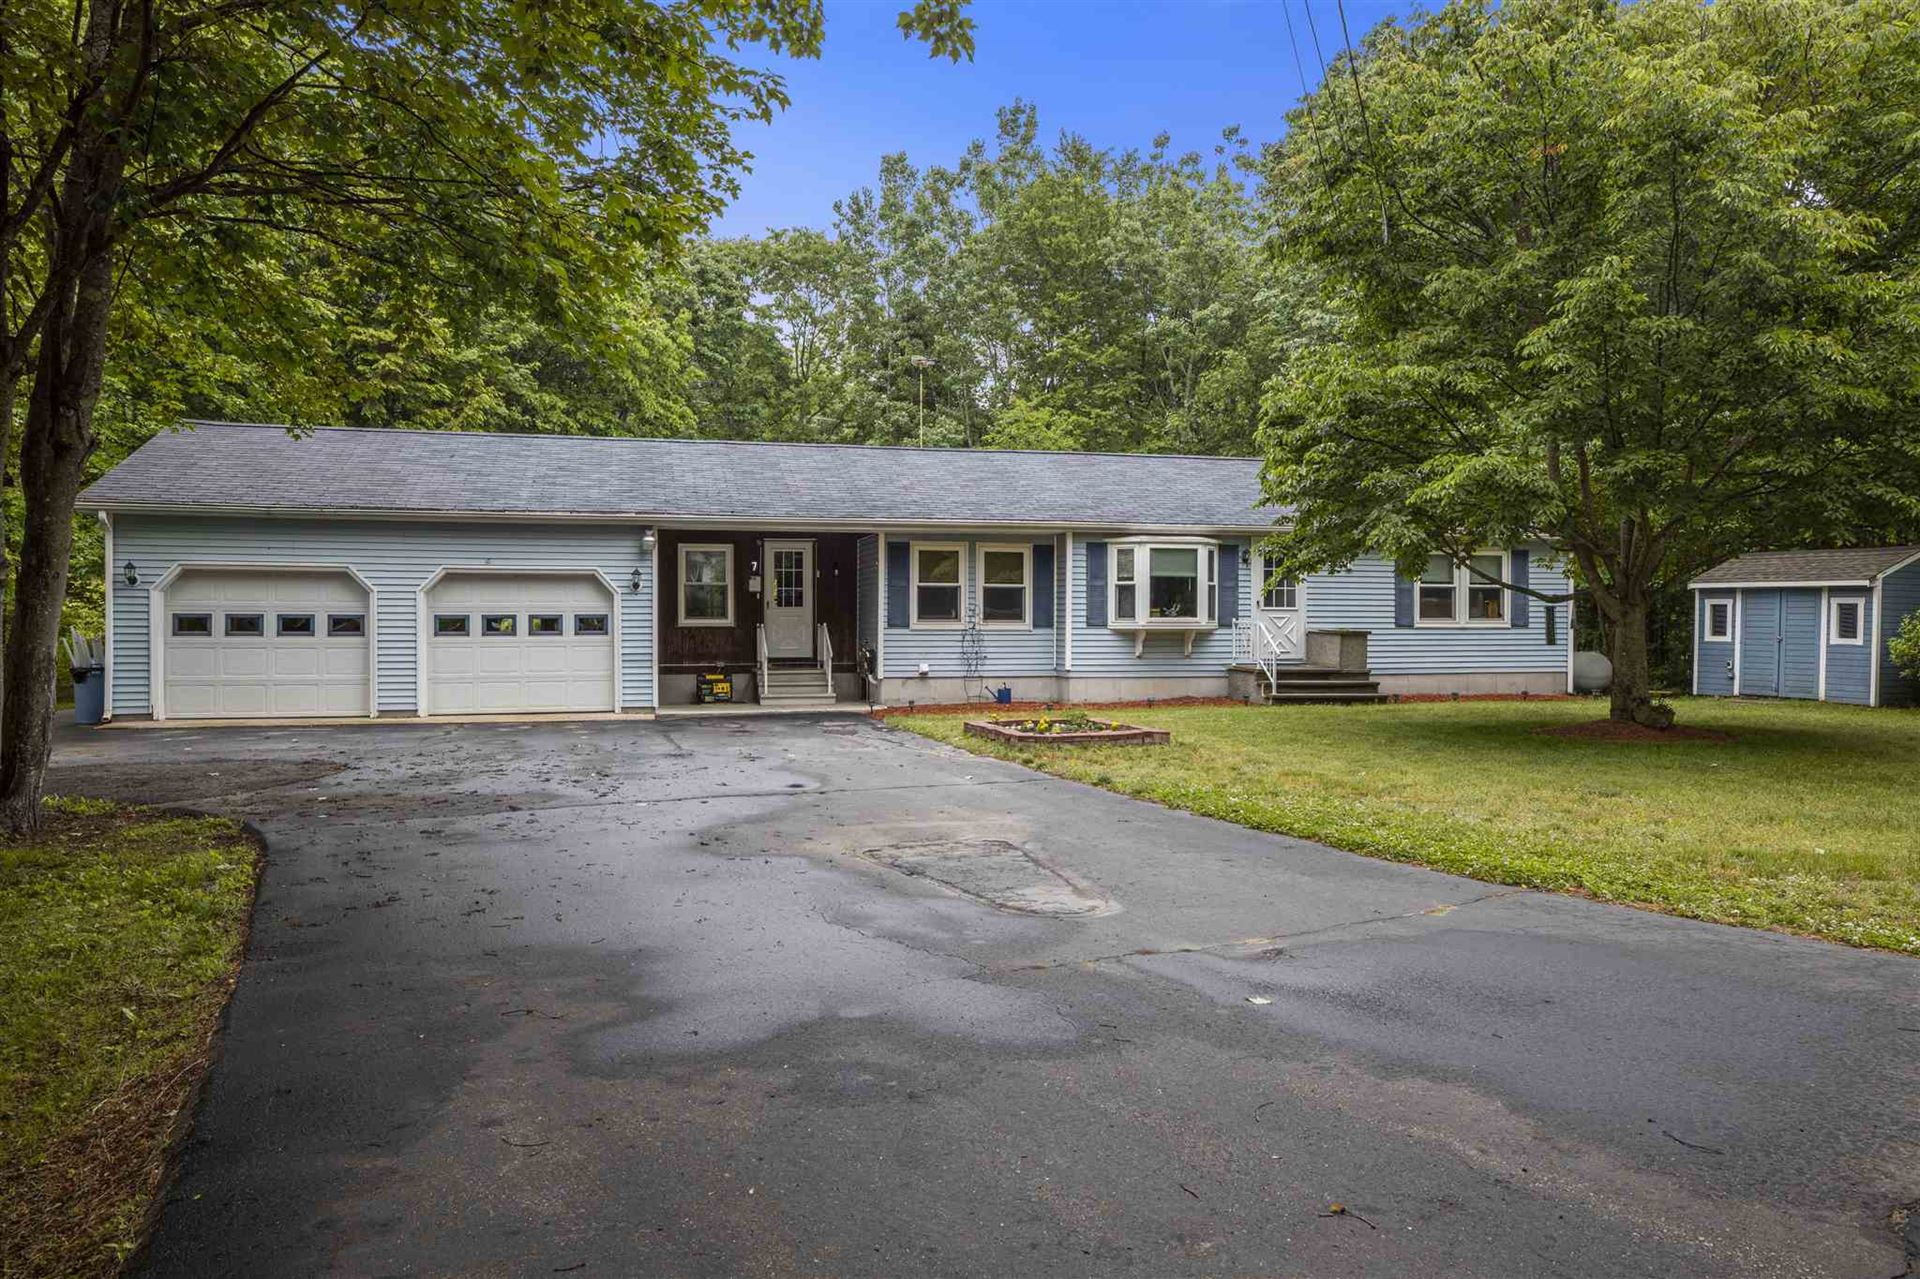 7 Lamy Road, Rochester, NH 03839 - #: 4811135